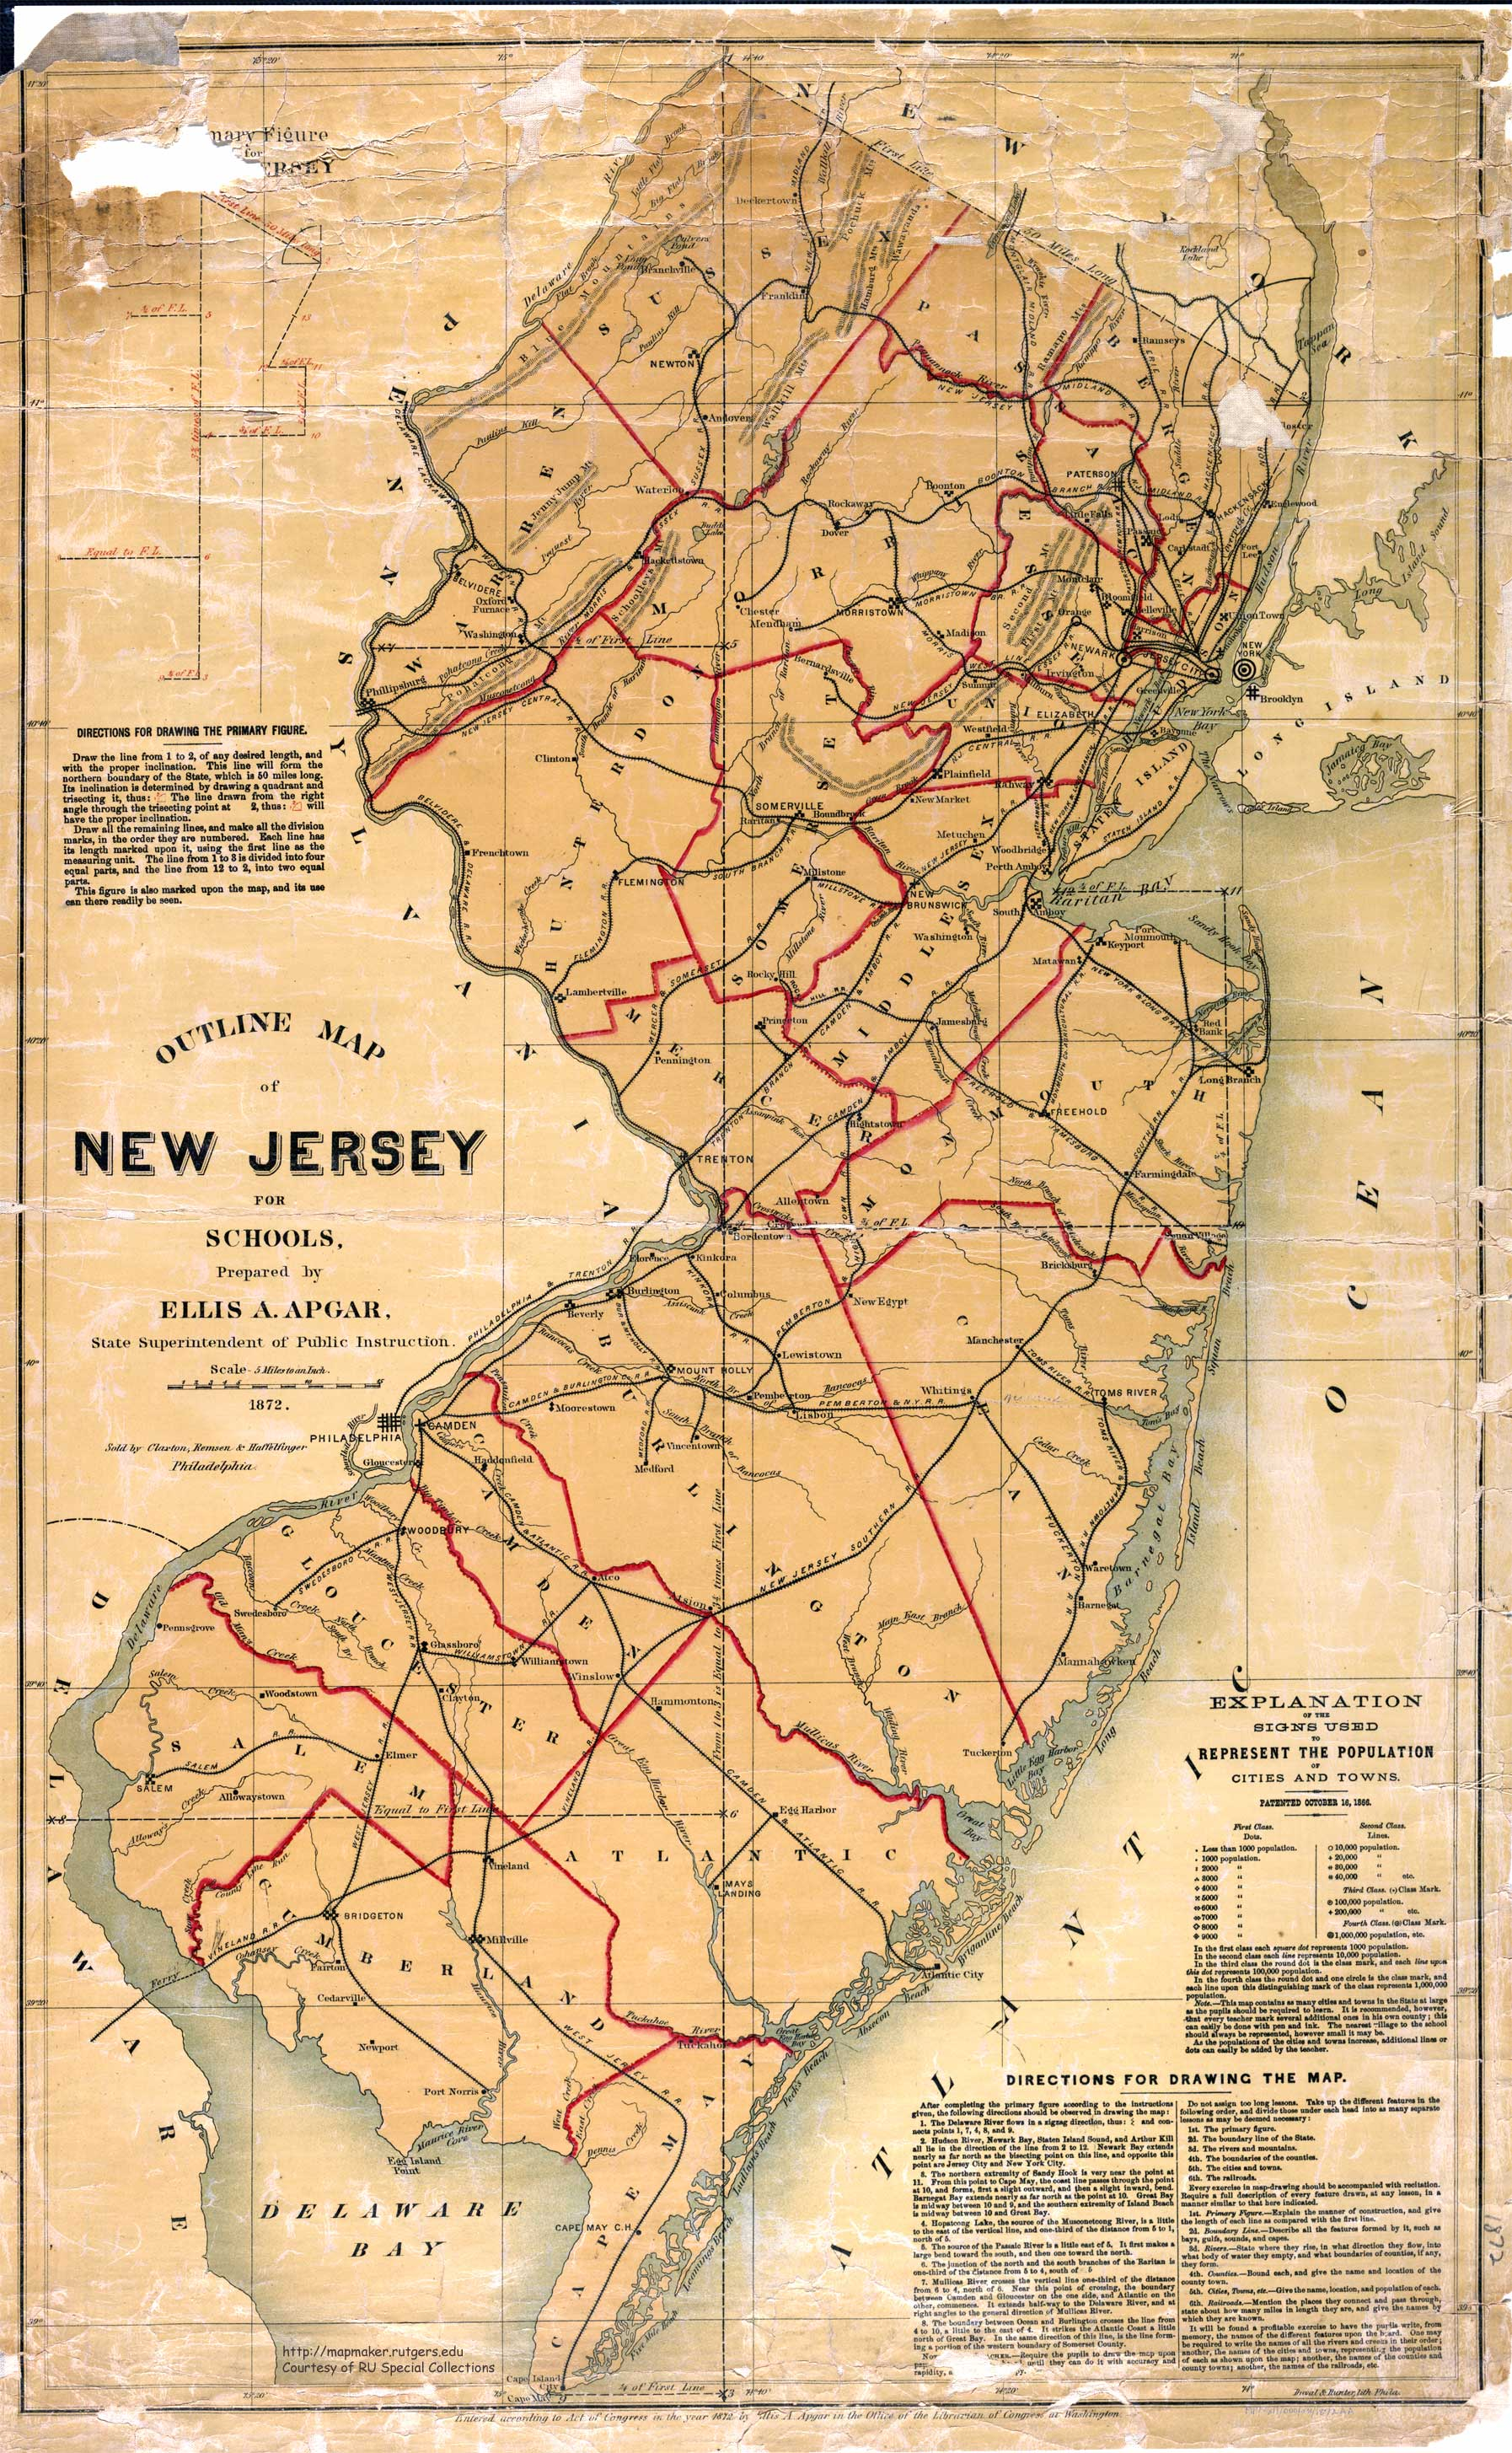 GLOUCESTER COUNTY New Jersey REFERENCE - Maps of nj